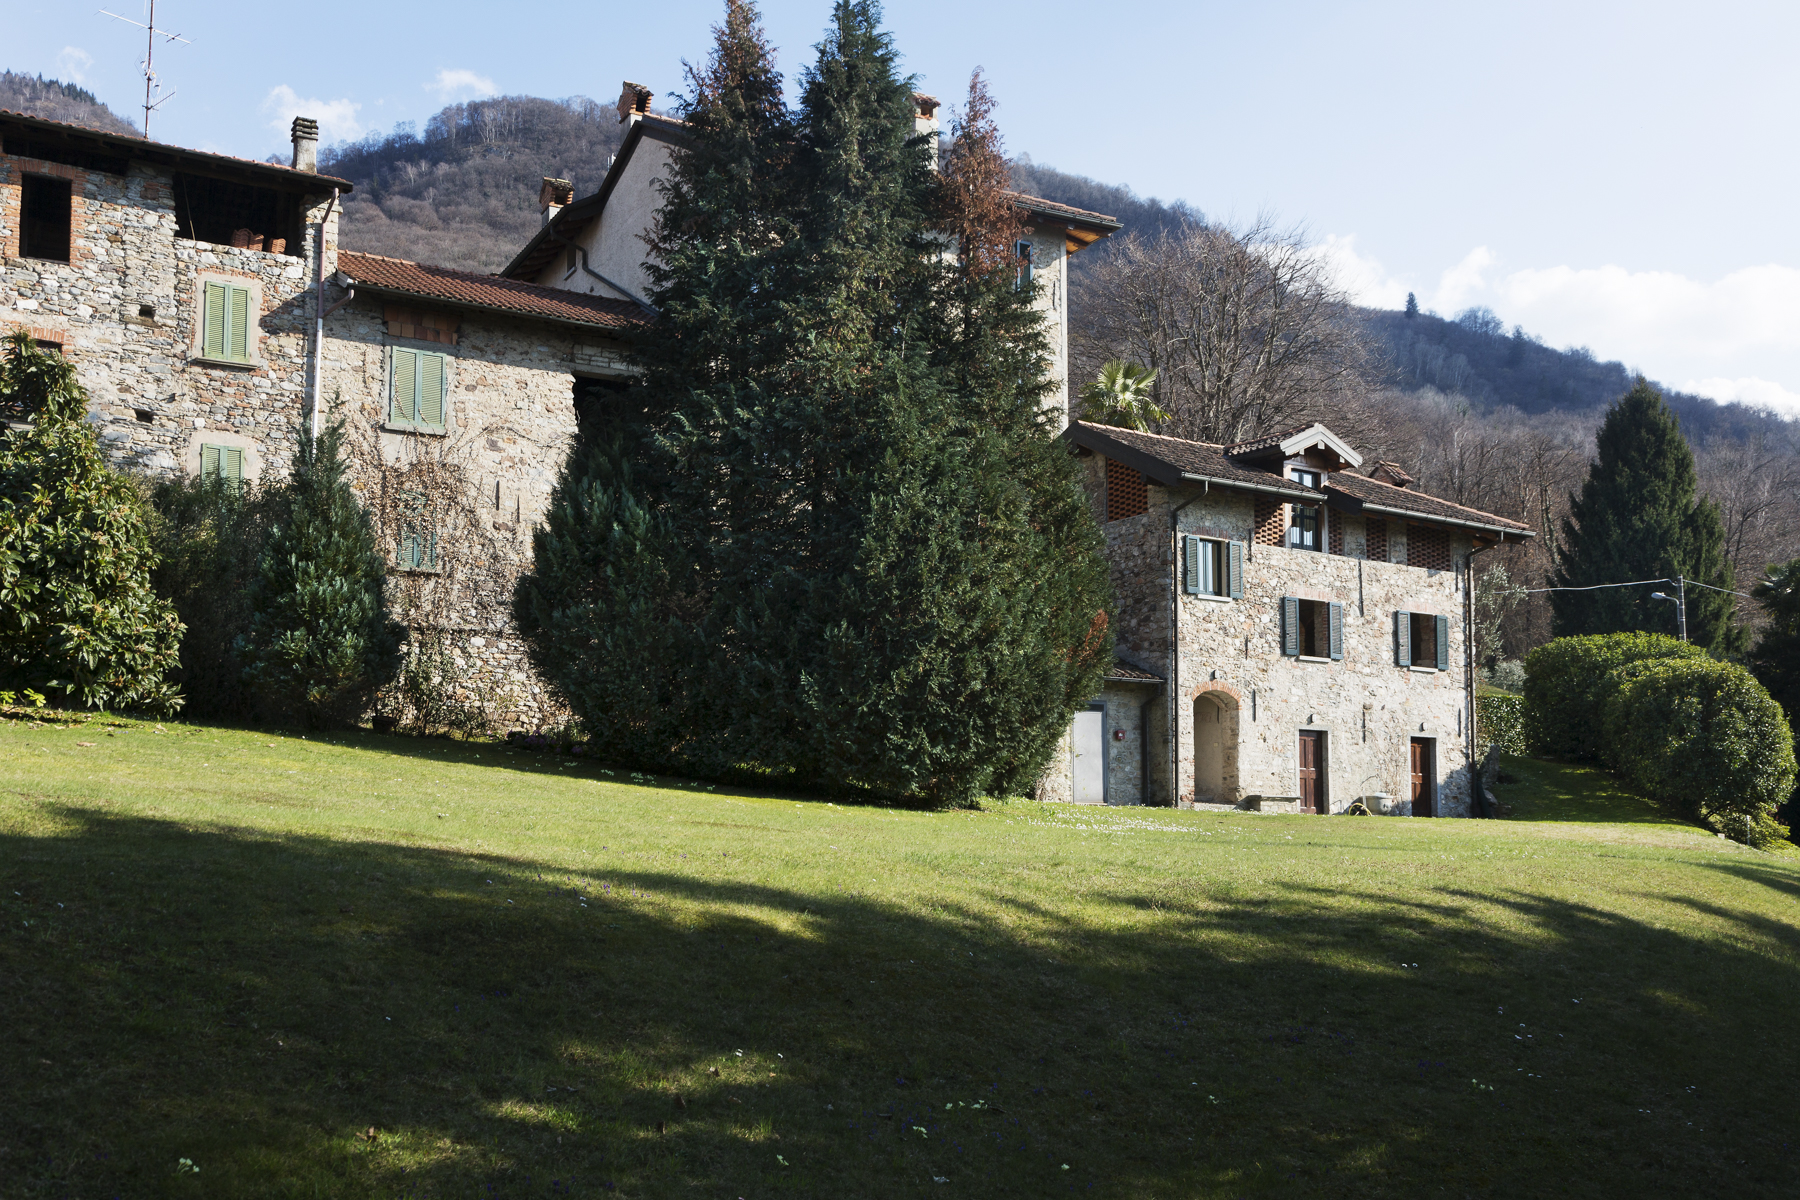 Additional photo for property listing at Unique Country Home on the Lake Maggiore shore Via Unica Porto Valtravaglia, Varese 21010 Italien